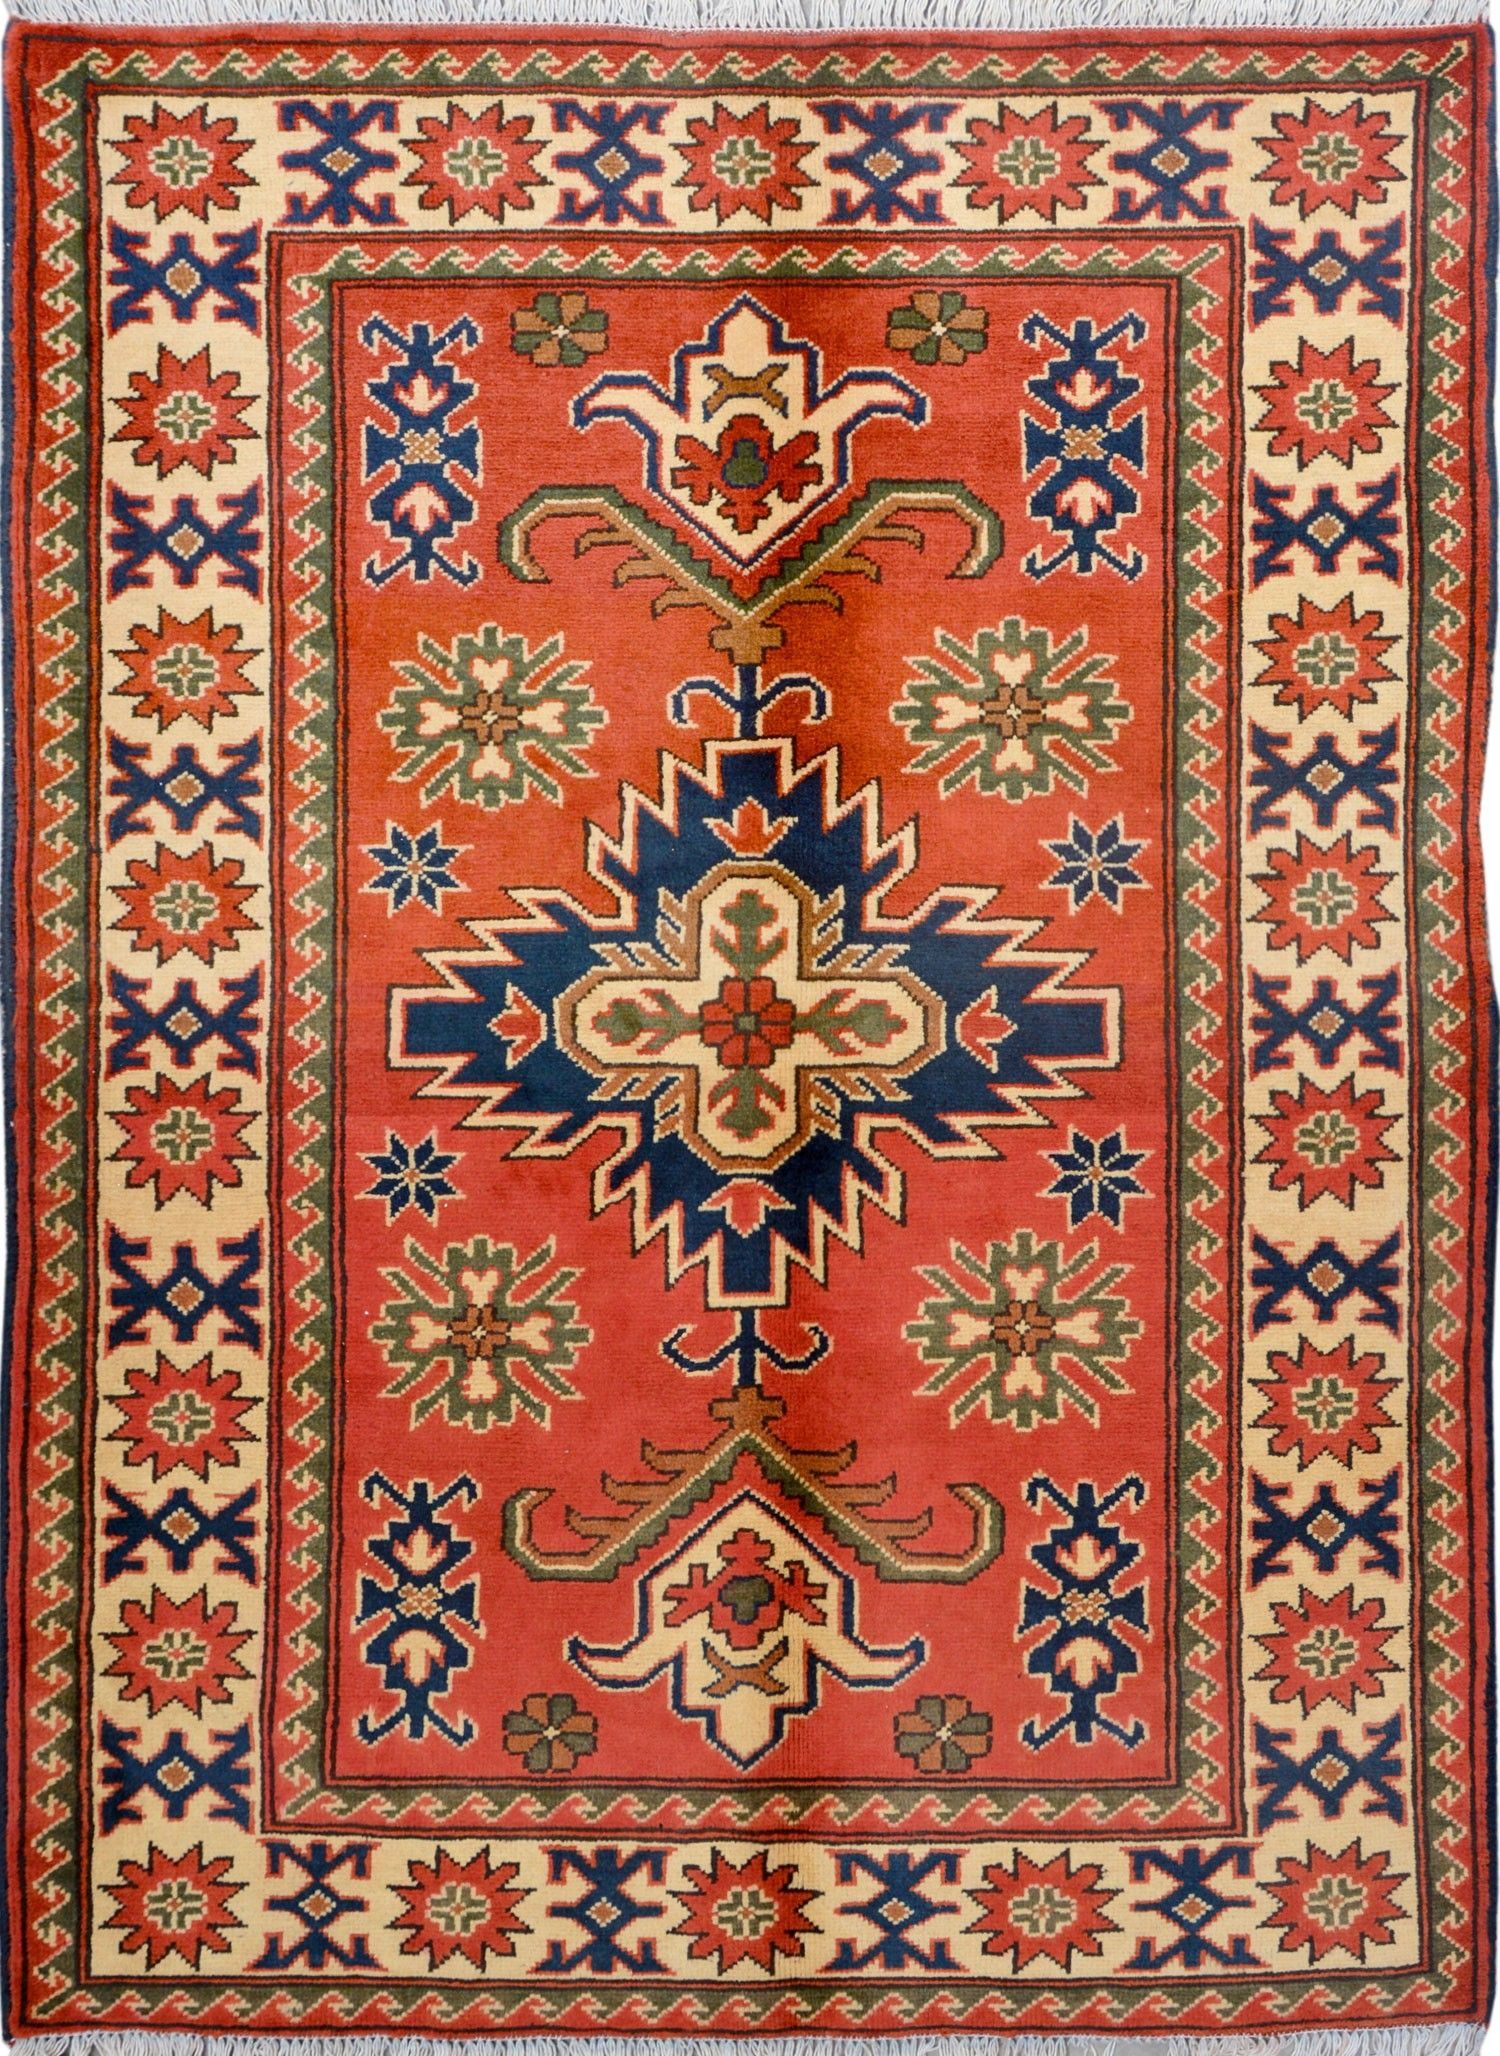 Red Oriental Kargai Rug 3 7 X 4 10 Ft No 11010 Http Alrug Com Red Oriental Kargai Rug 3 7 X 4 10 Ft No 11010 Ht Area Rug Design Rugs Tribal Carpets